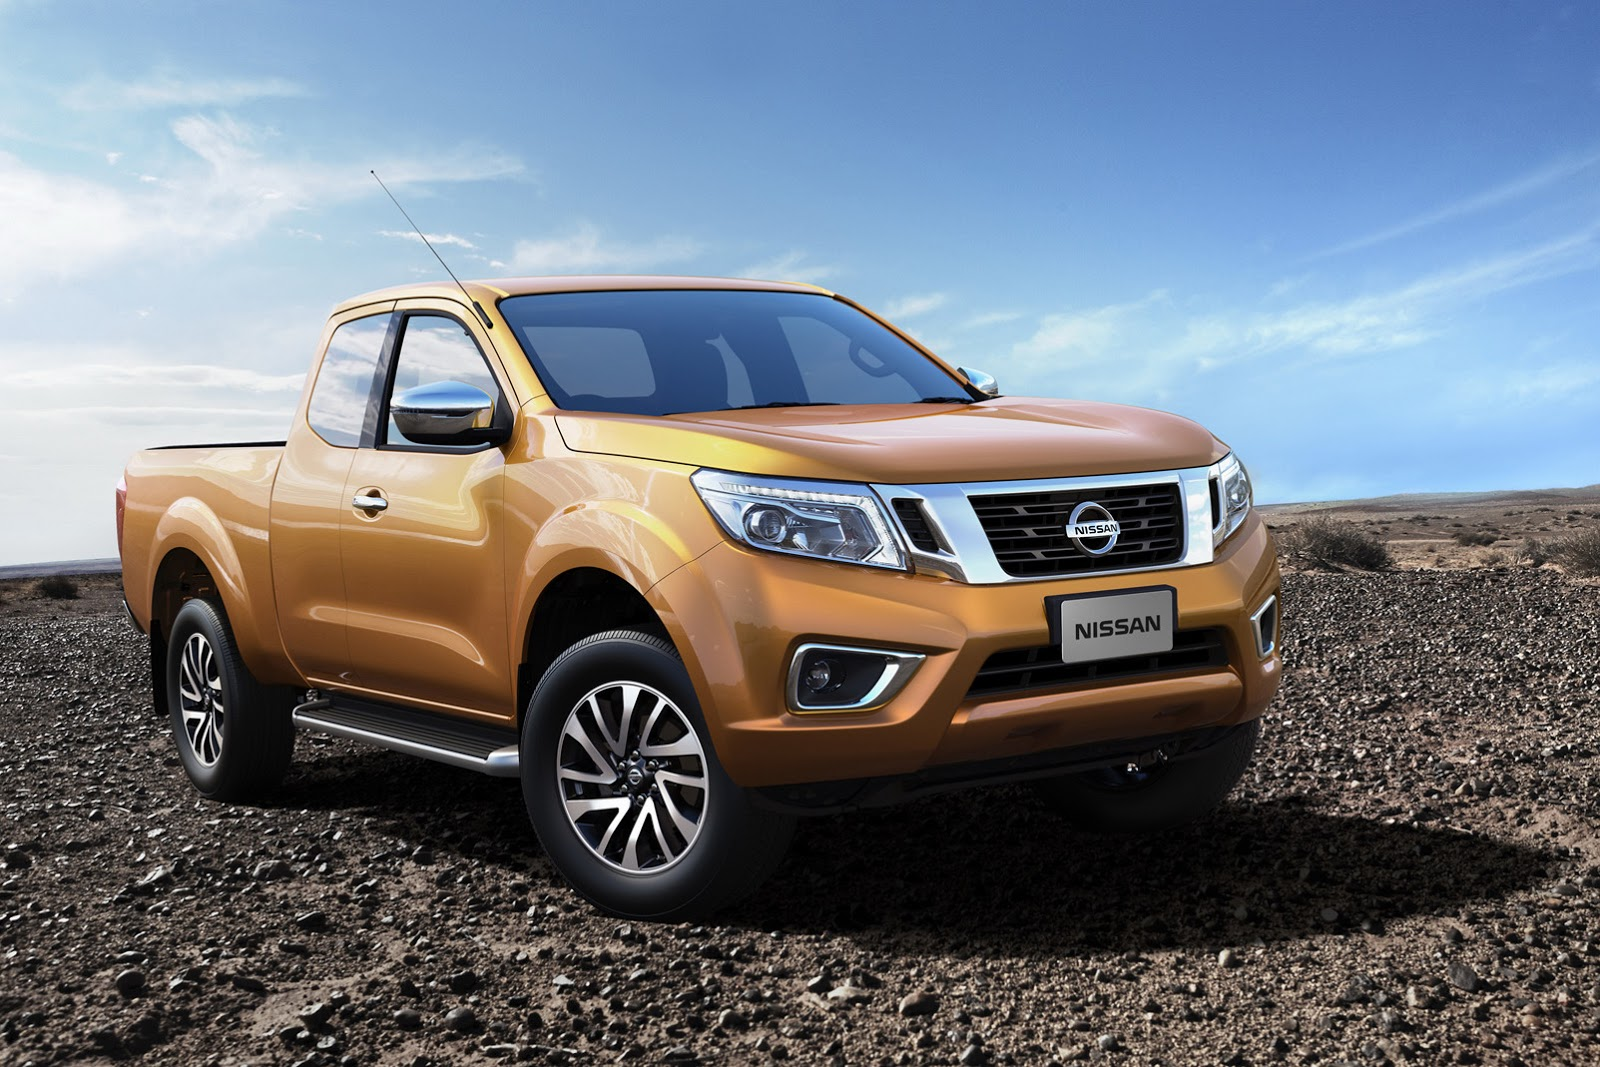 renault pickup truck confirmed for 2016 will be based on nissan navara autoevolution. Black Bedroom Furniture Sets. Home Design Ideas